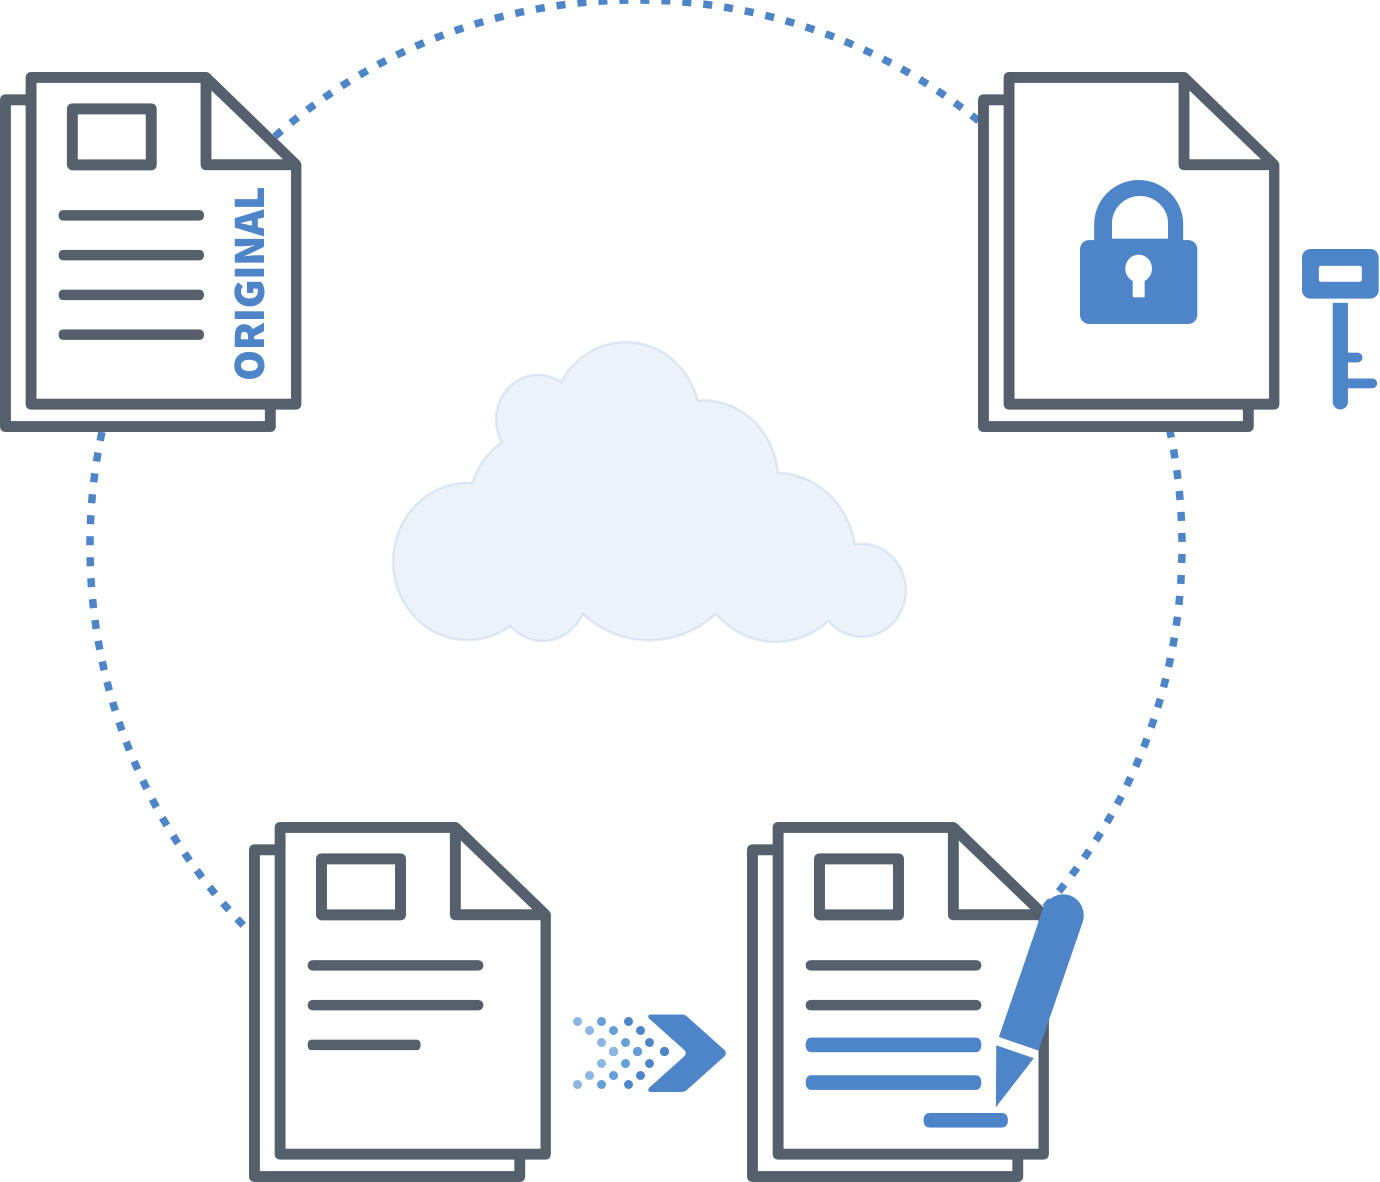 ownCloud provides measures for you to stay privacy compliant